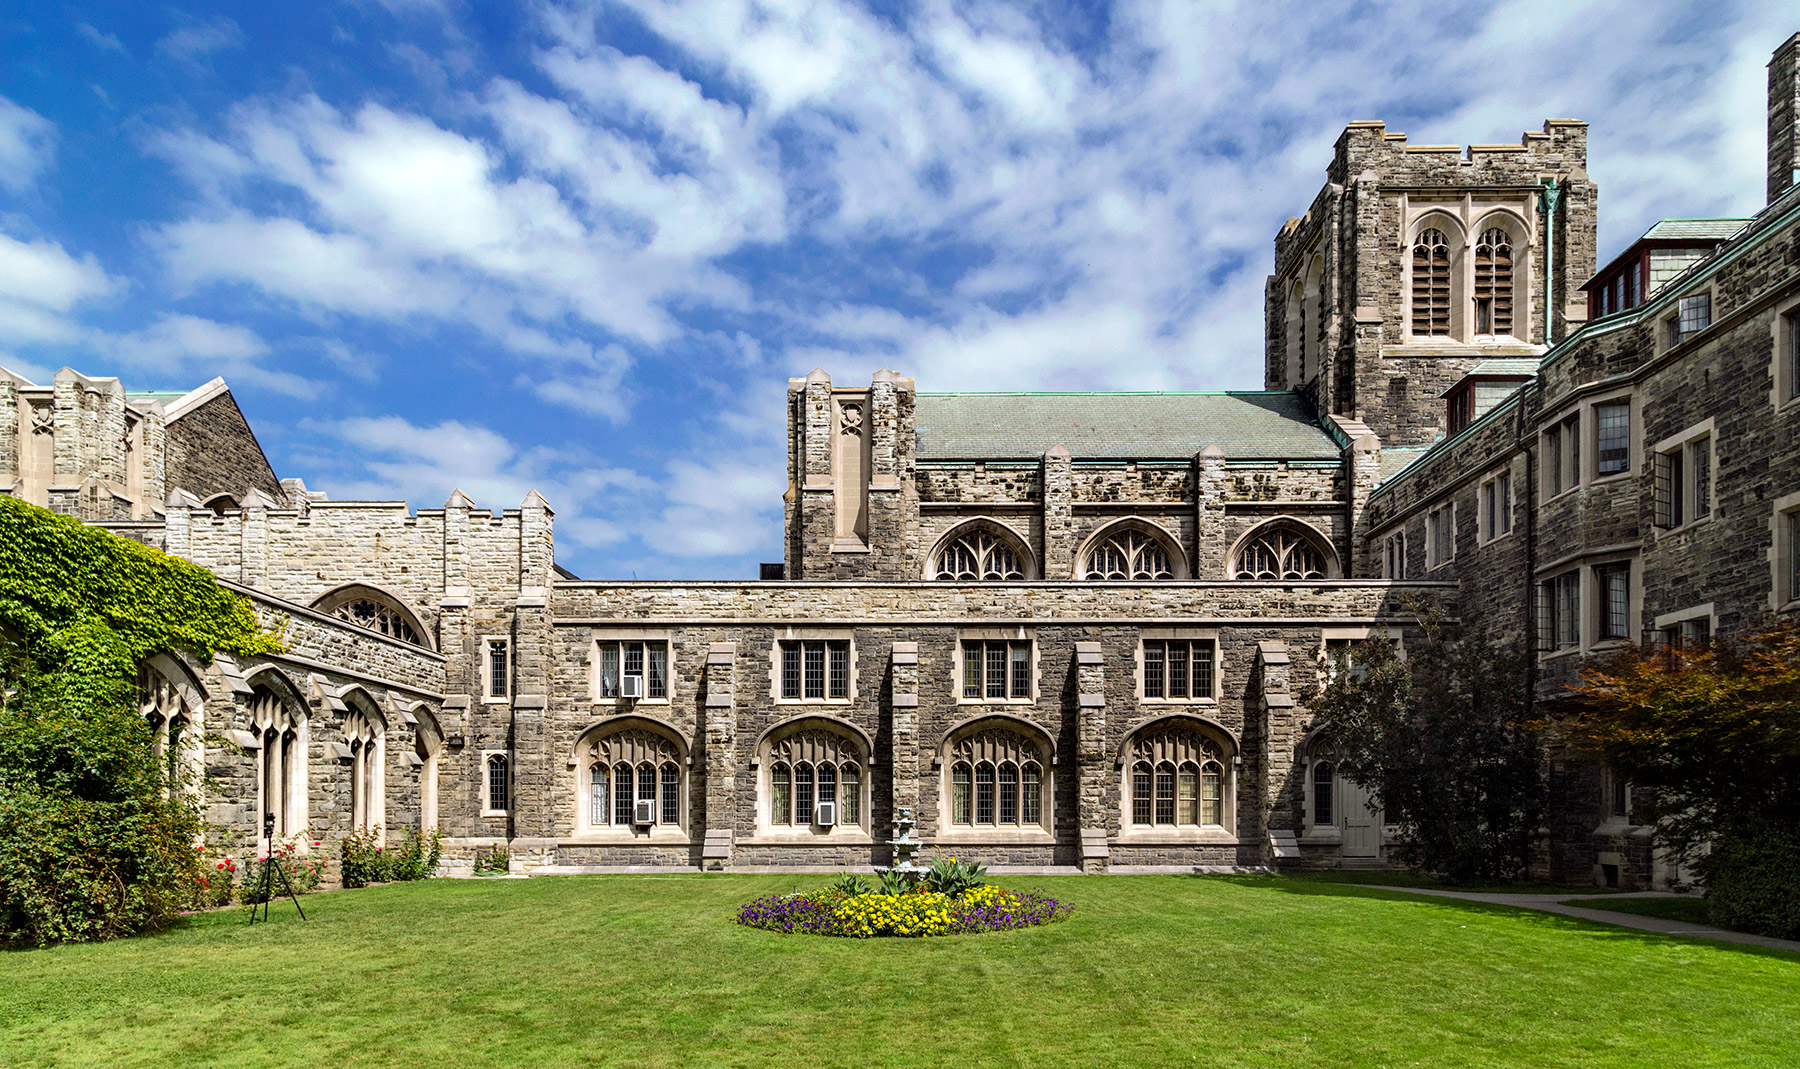 20150517. At Doors Open Toronto, get your Gothic Revival fix at